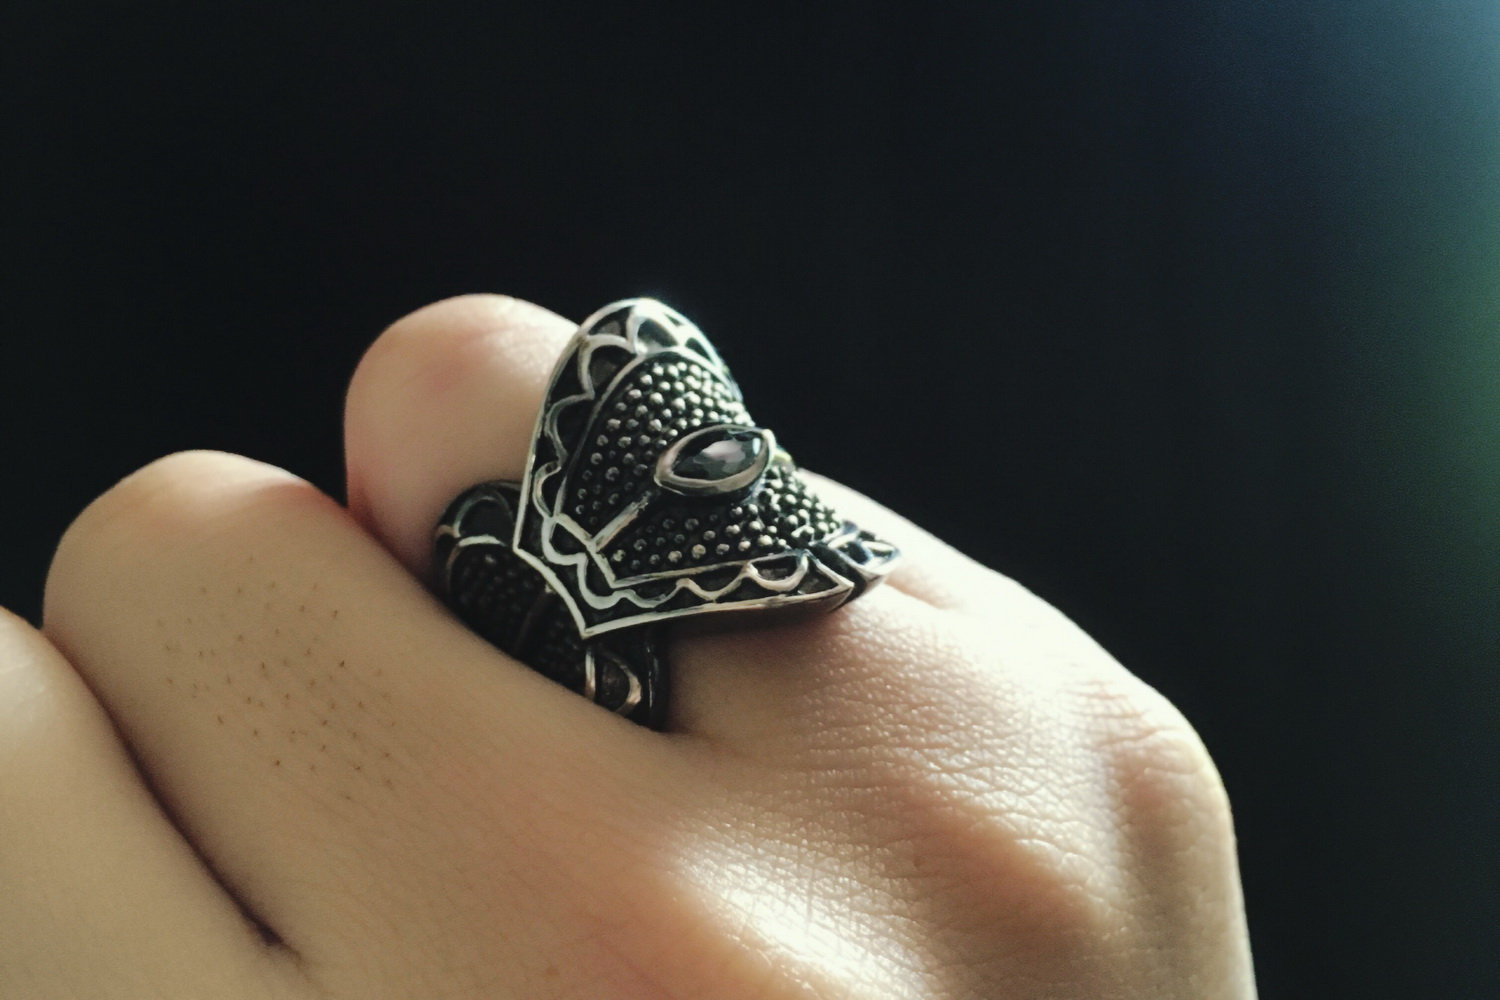 Steampunk ring Medieval ring Knitted silver ring Fantasy silver ring Bague homme femme White pearl ring Corset ring Chevalier ring